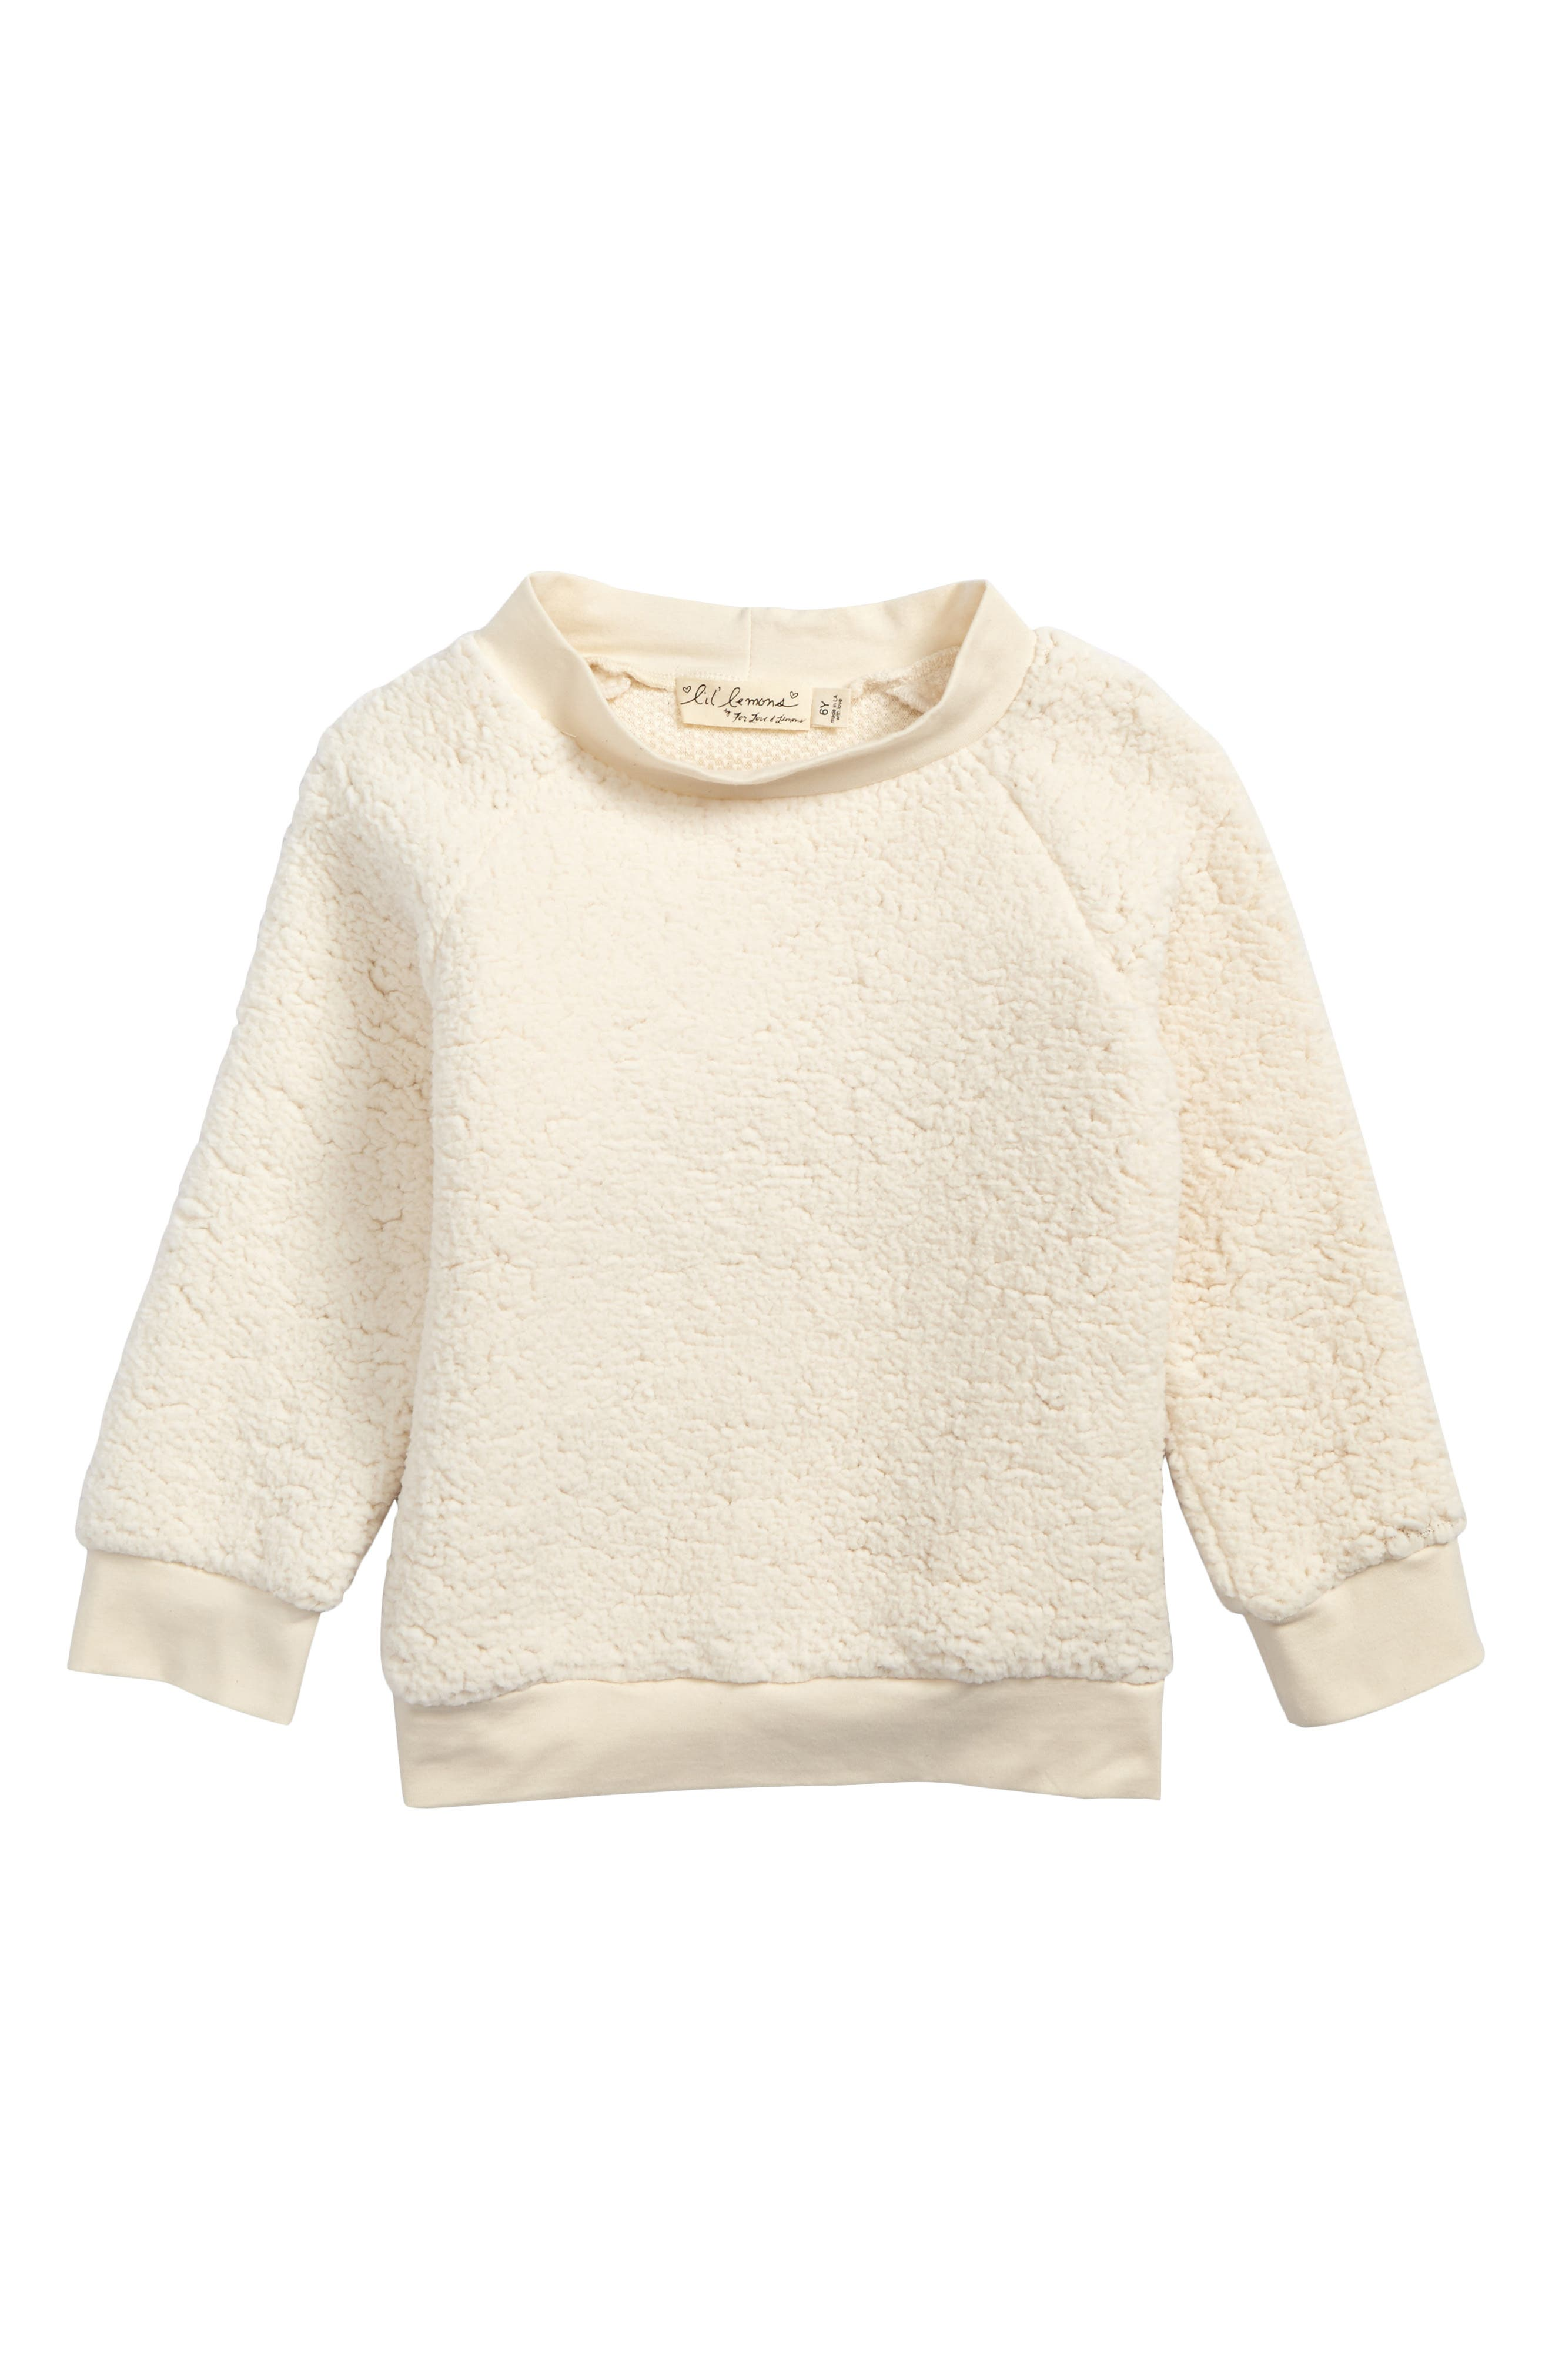 Fuzzy Raglan Sweatshirt,                         Main,                         color, Ivorycloud